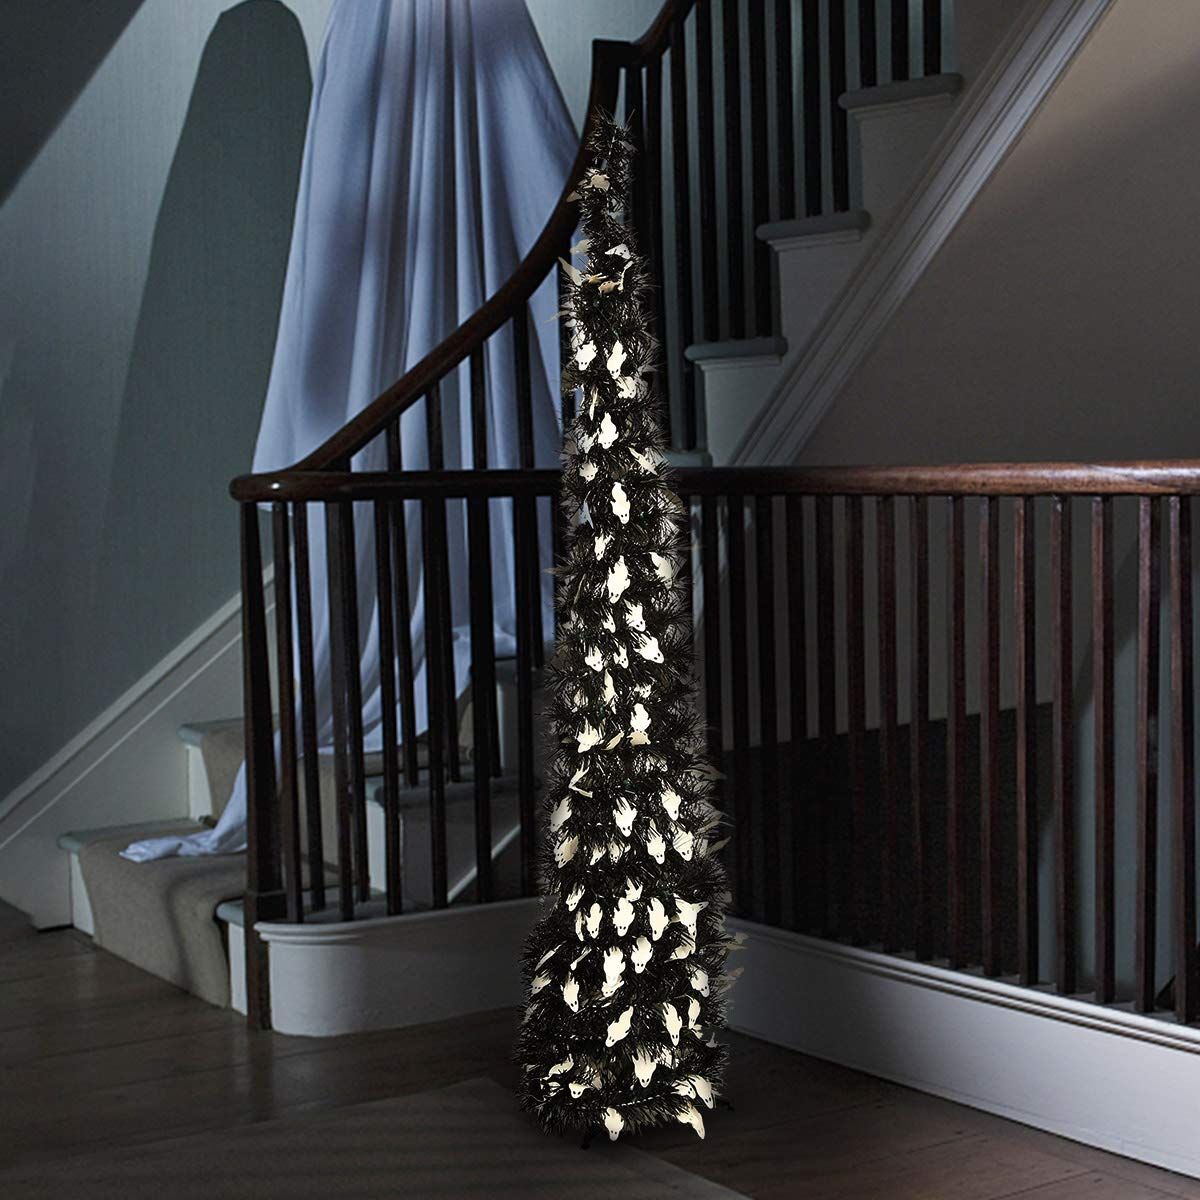 Yayoshow Collapsible Halloween Xmas Decoration Trees, Pop up Halloween Pumpkin Ghost Tinsel Sequins Tree with Stand for Home Fireplace Party Decoration, Easy-Assembly & Reusable, 3.5ft(106CM)